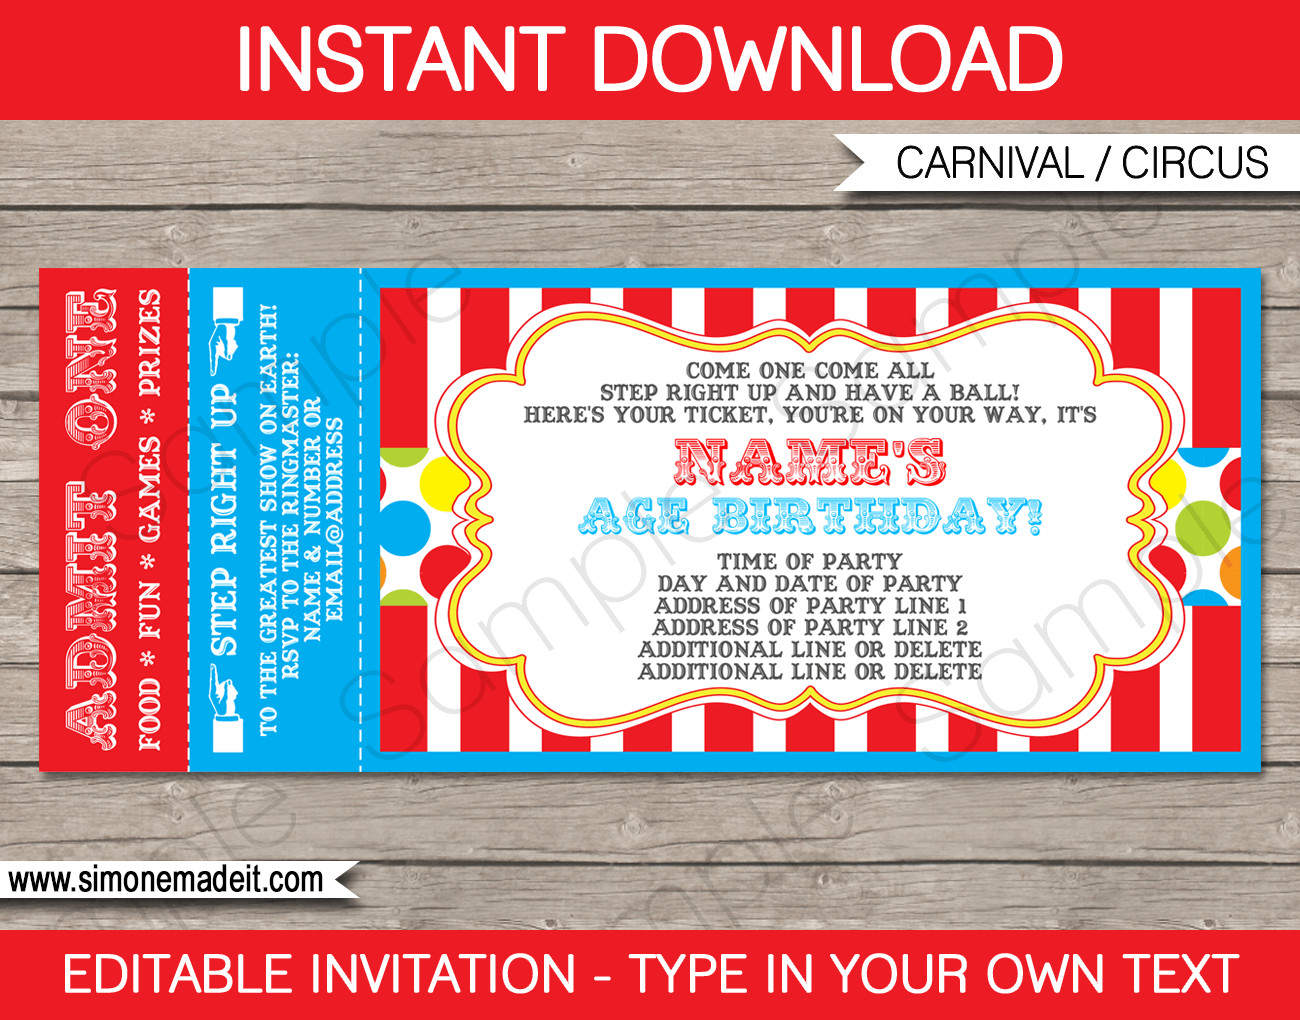 Carnival Ticket Invitation Template Free Carnival Ticket Invitation Template